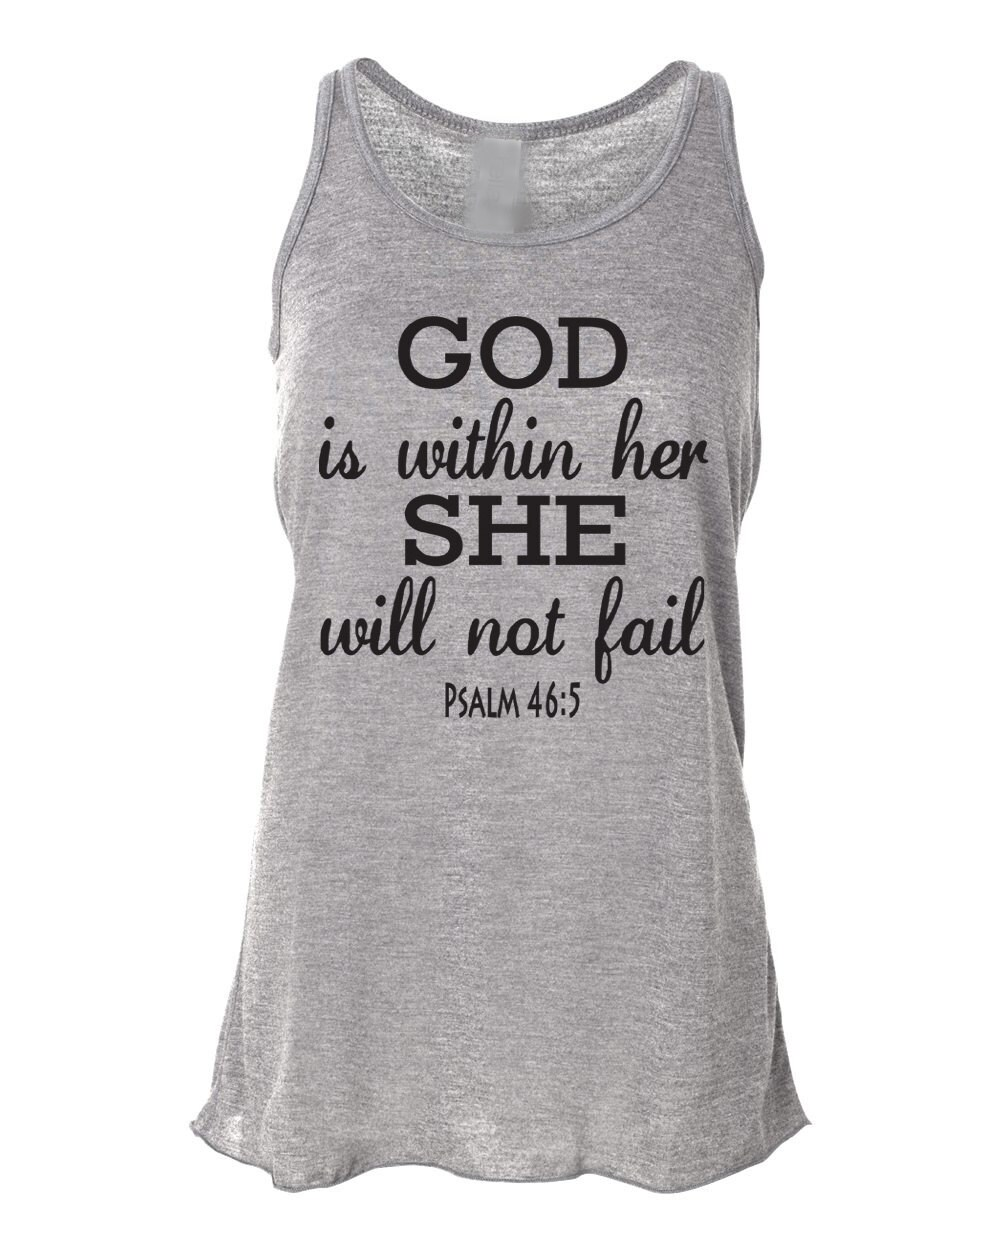 Workout Quotes For Her: Running Tank Top Psalm 46:5 God Is Within Her. Workout Tank